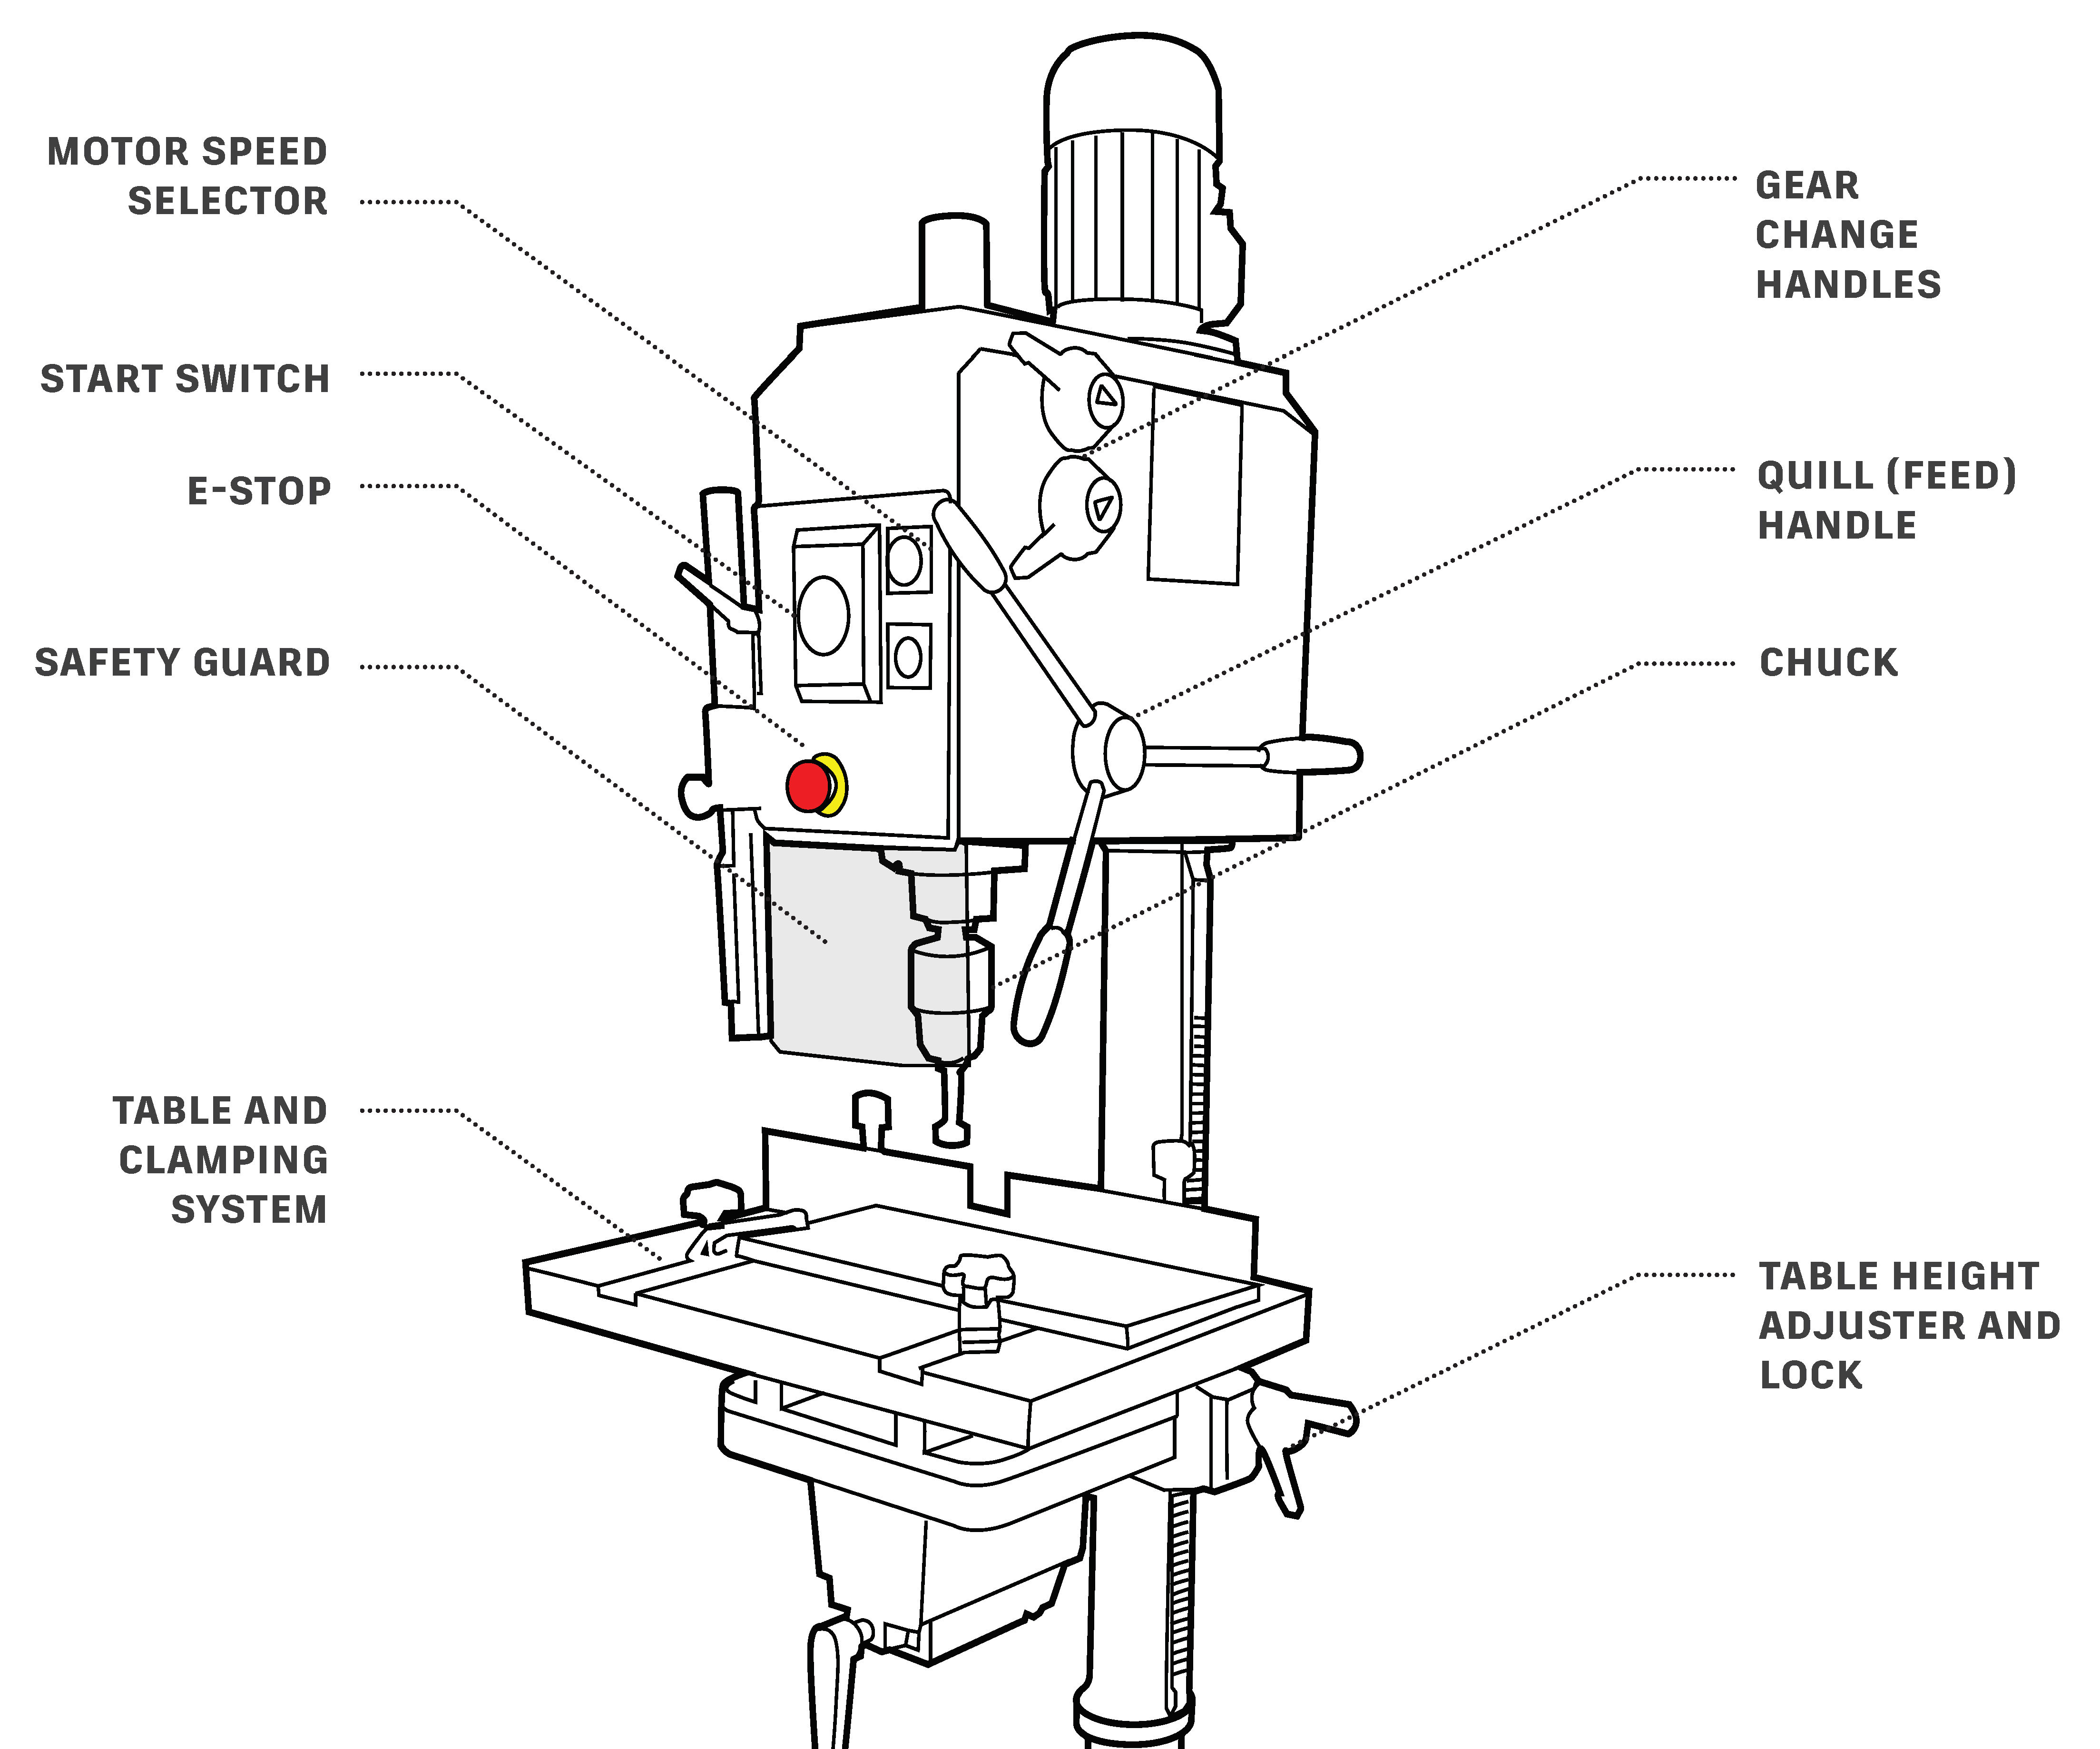 small resolution of drill press wiring diagram wiring diagram yer drill press wiring diagram